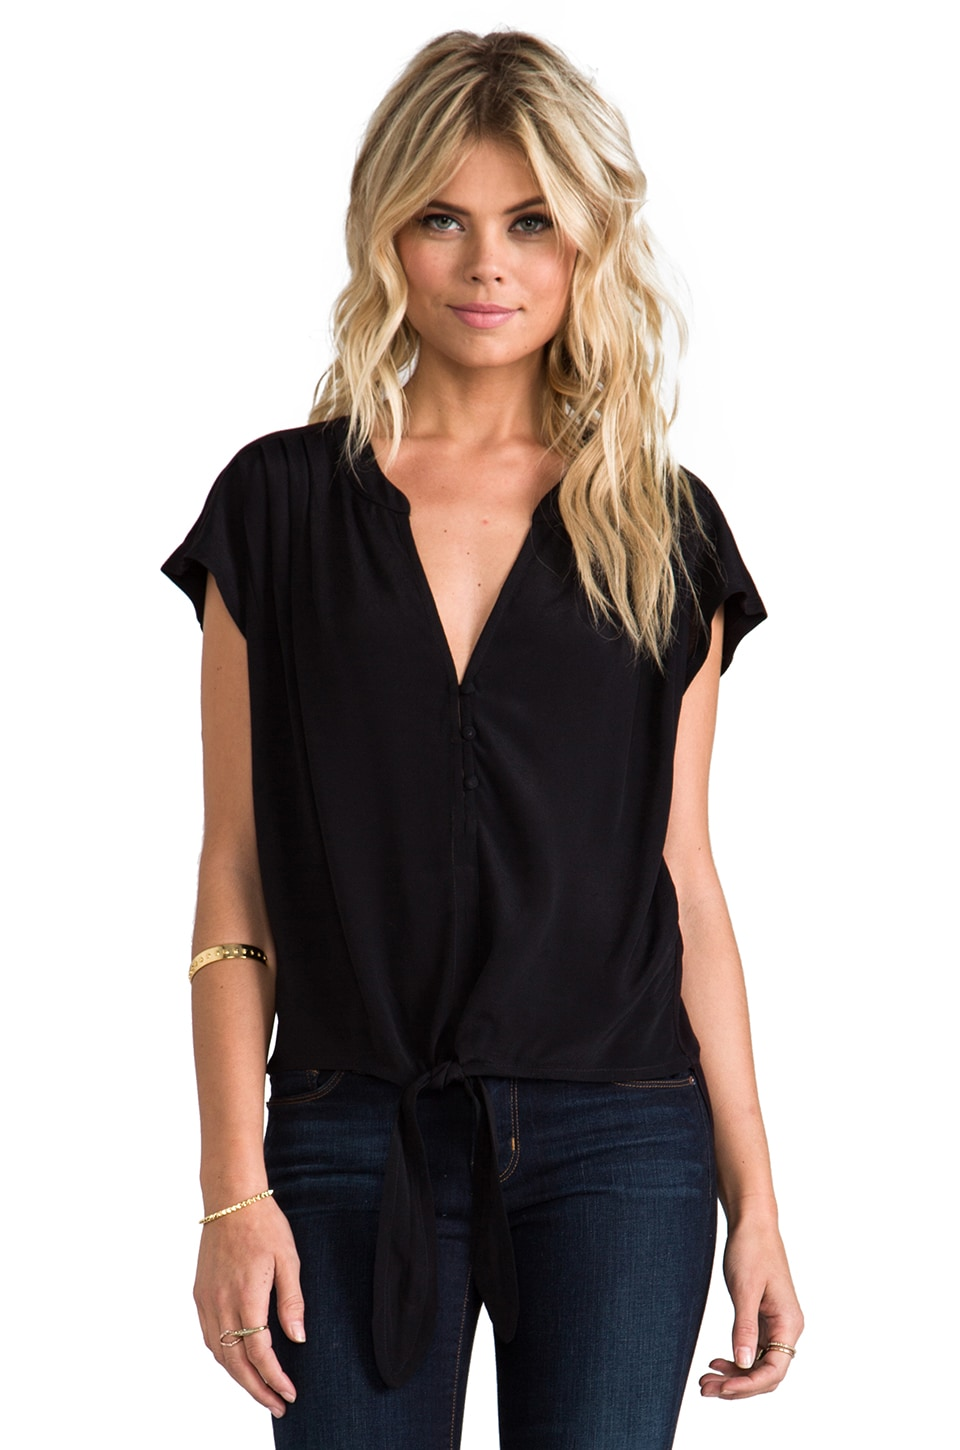 Soft Joie Chally Top in Caviar